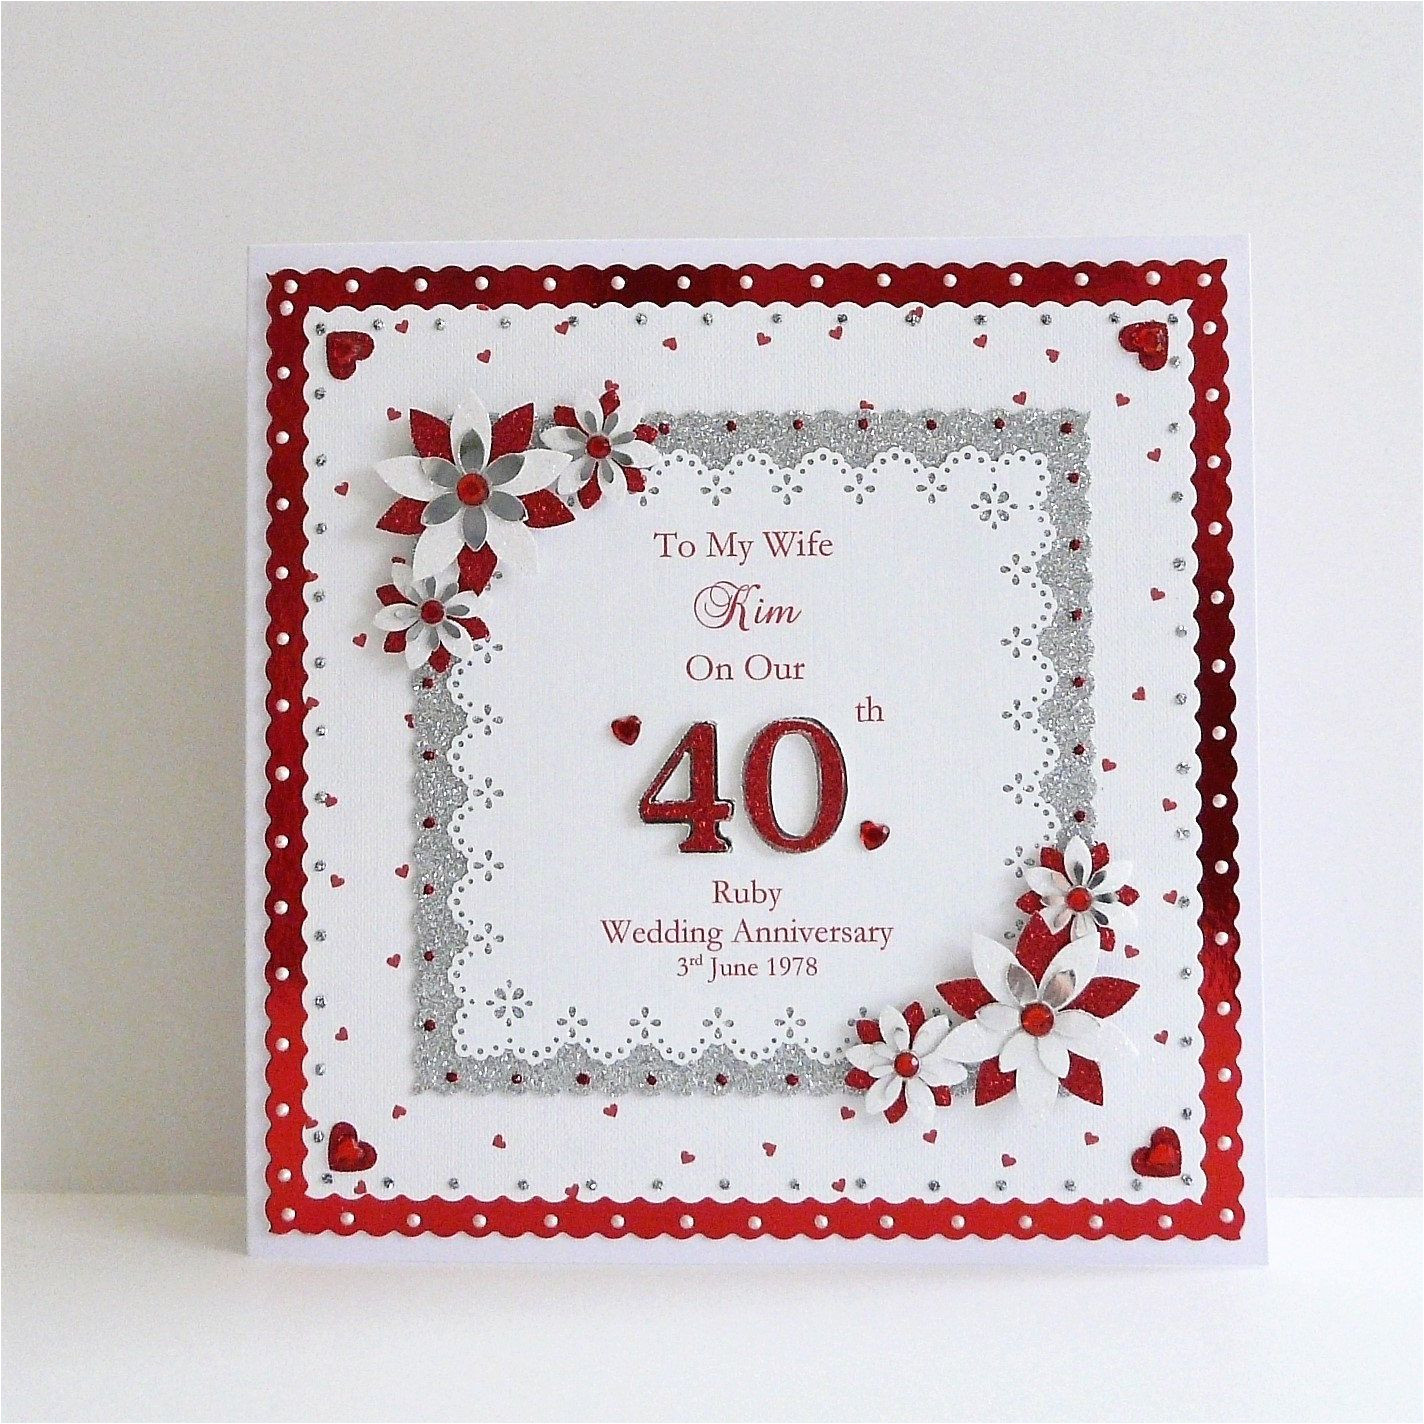 Verse for Ruby Wedding Anniversary Card 40th Ruby Wedding Anniversary Card Wife Husband Mum Dad Nan